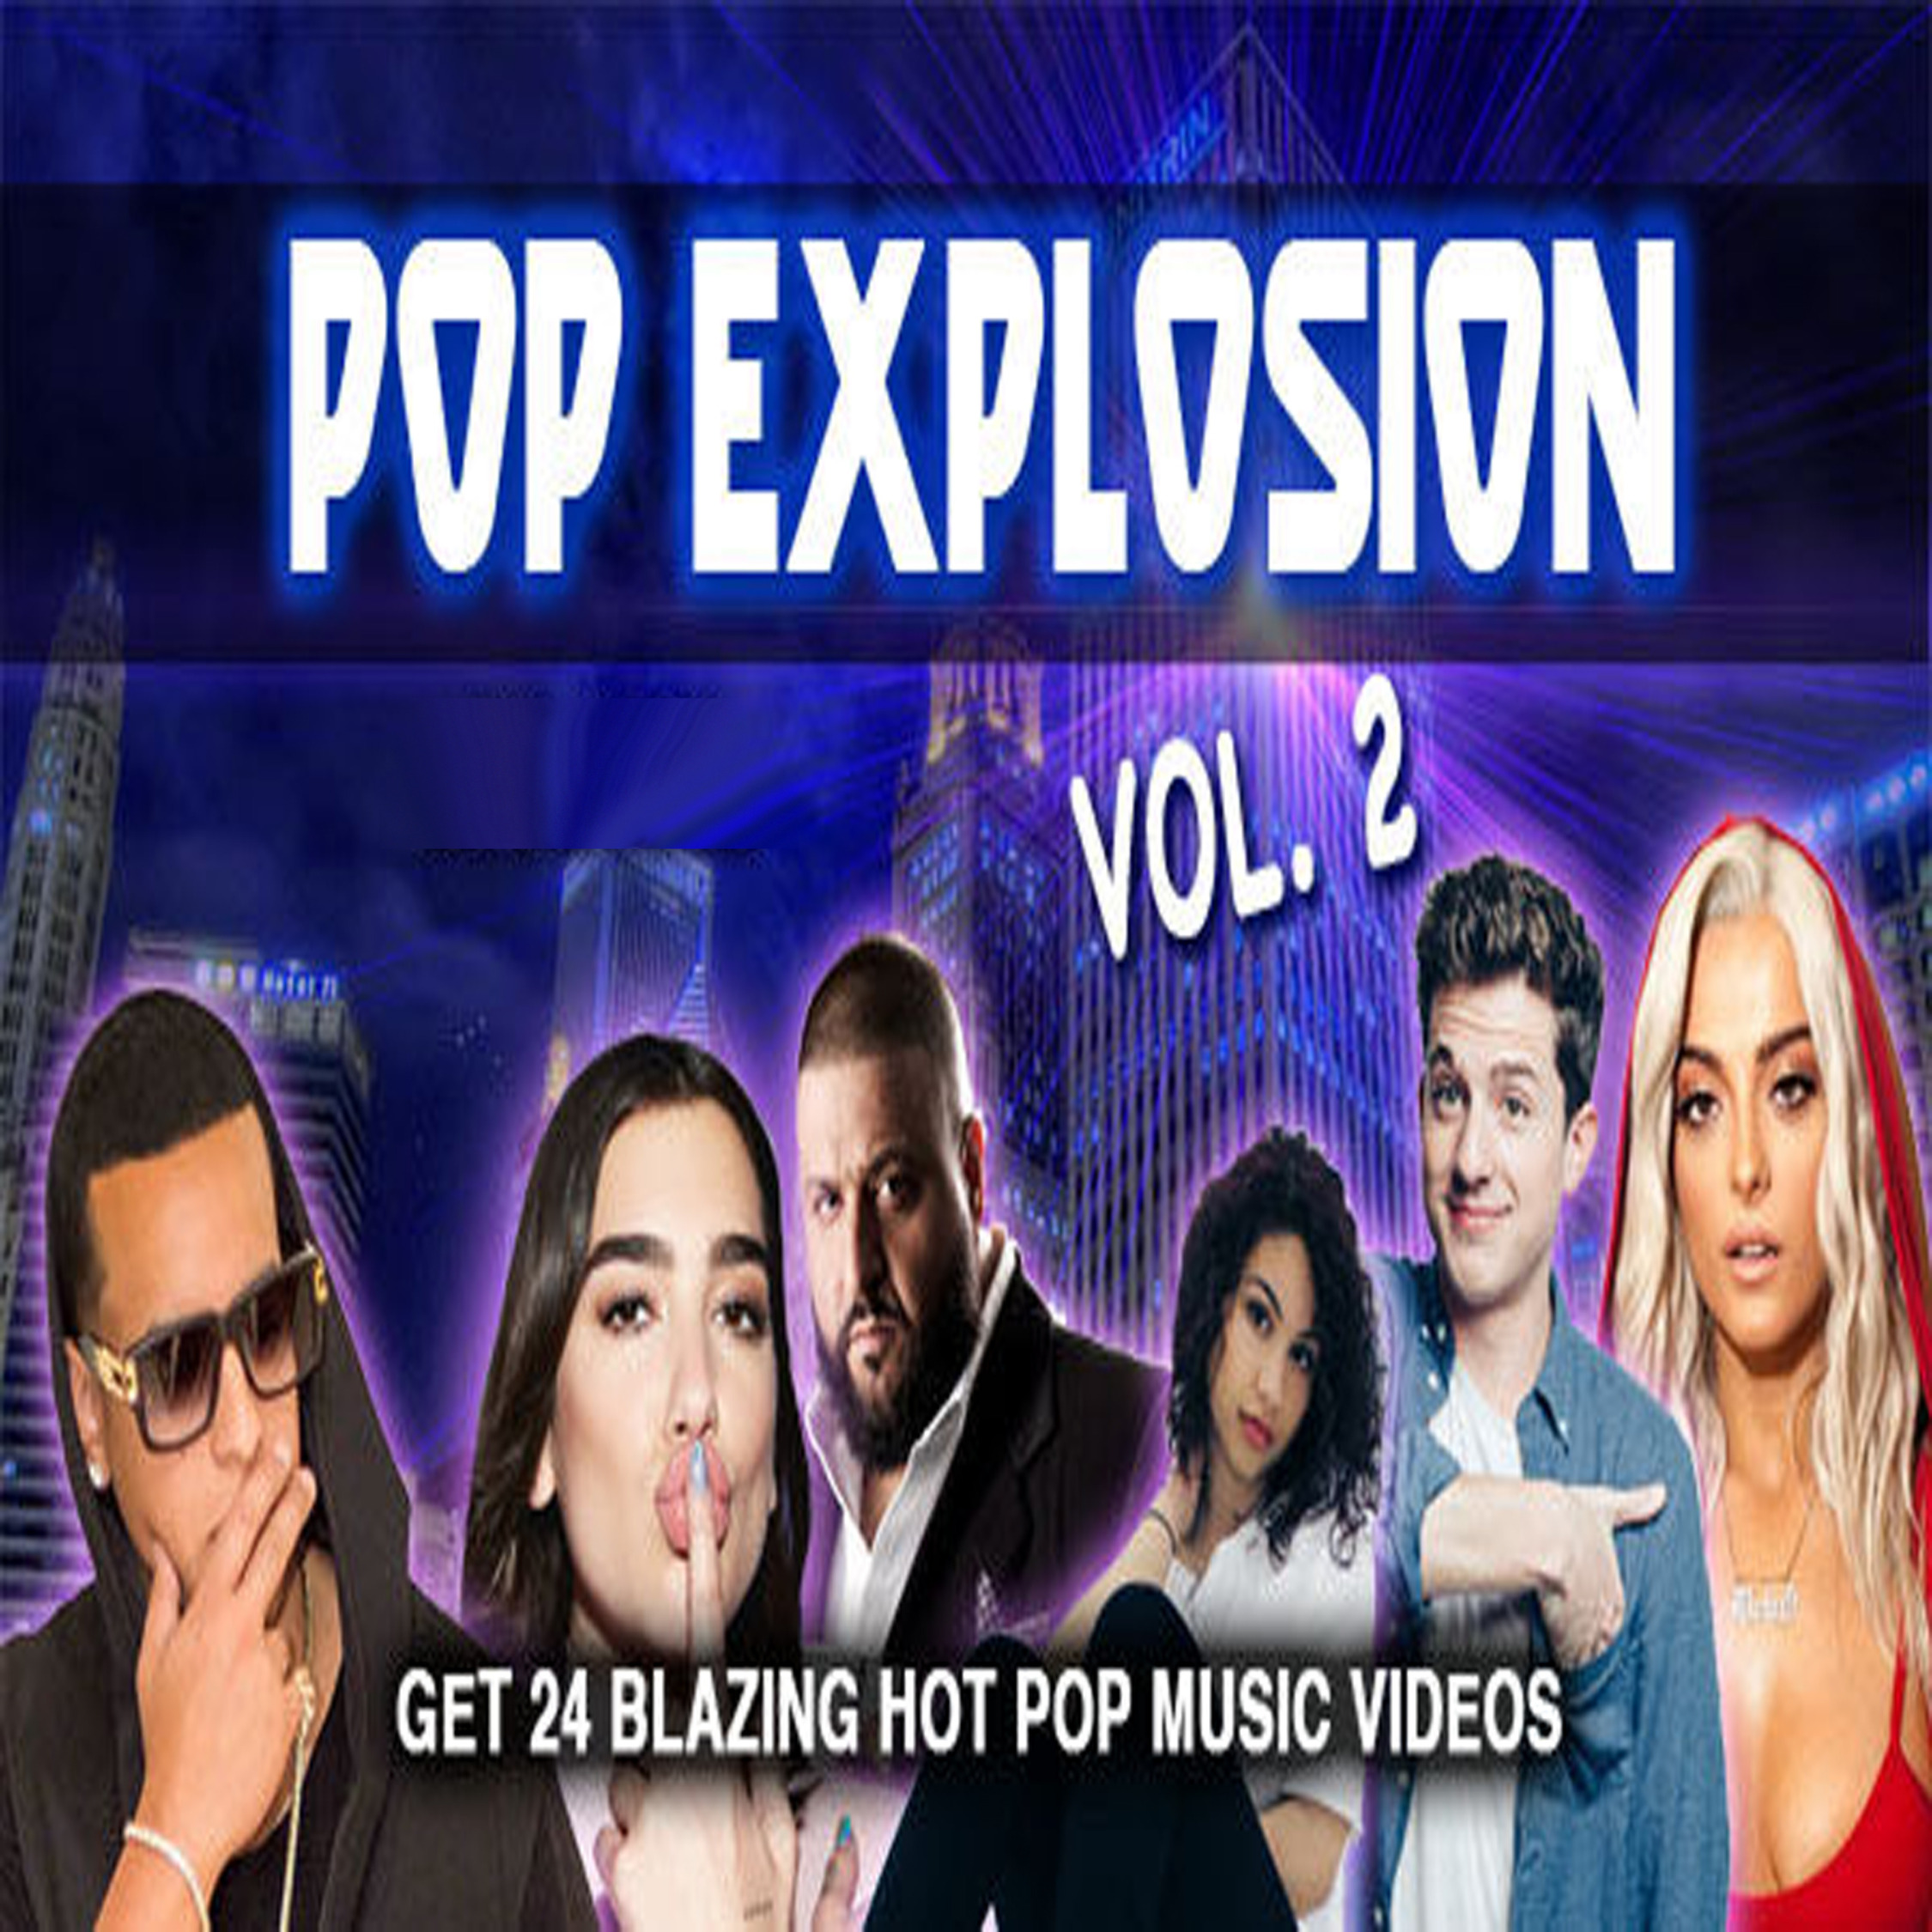 Pop Explosion Vol. 2 - Music Video Collection MP4 Videos